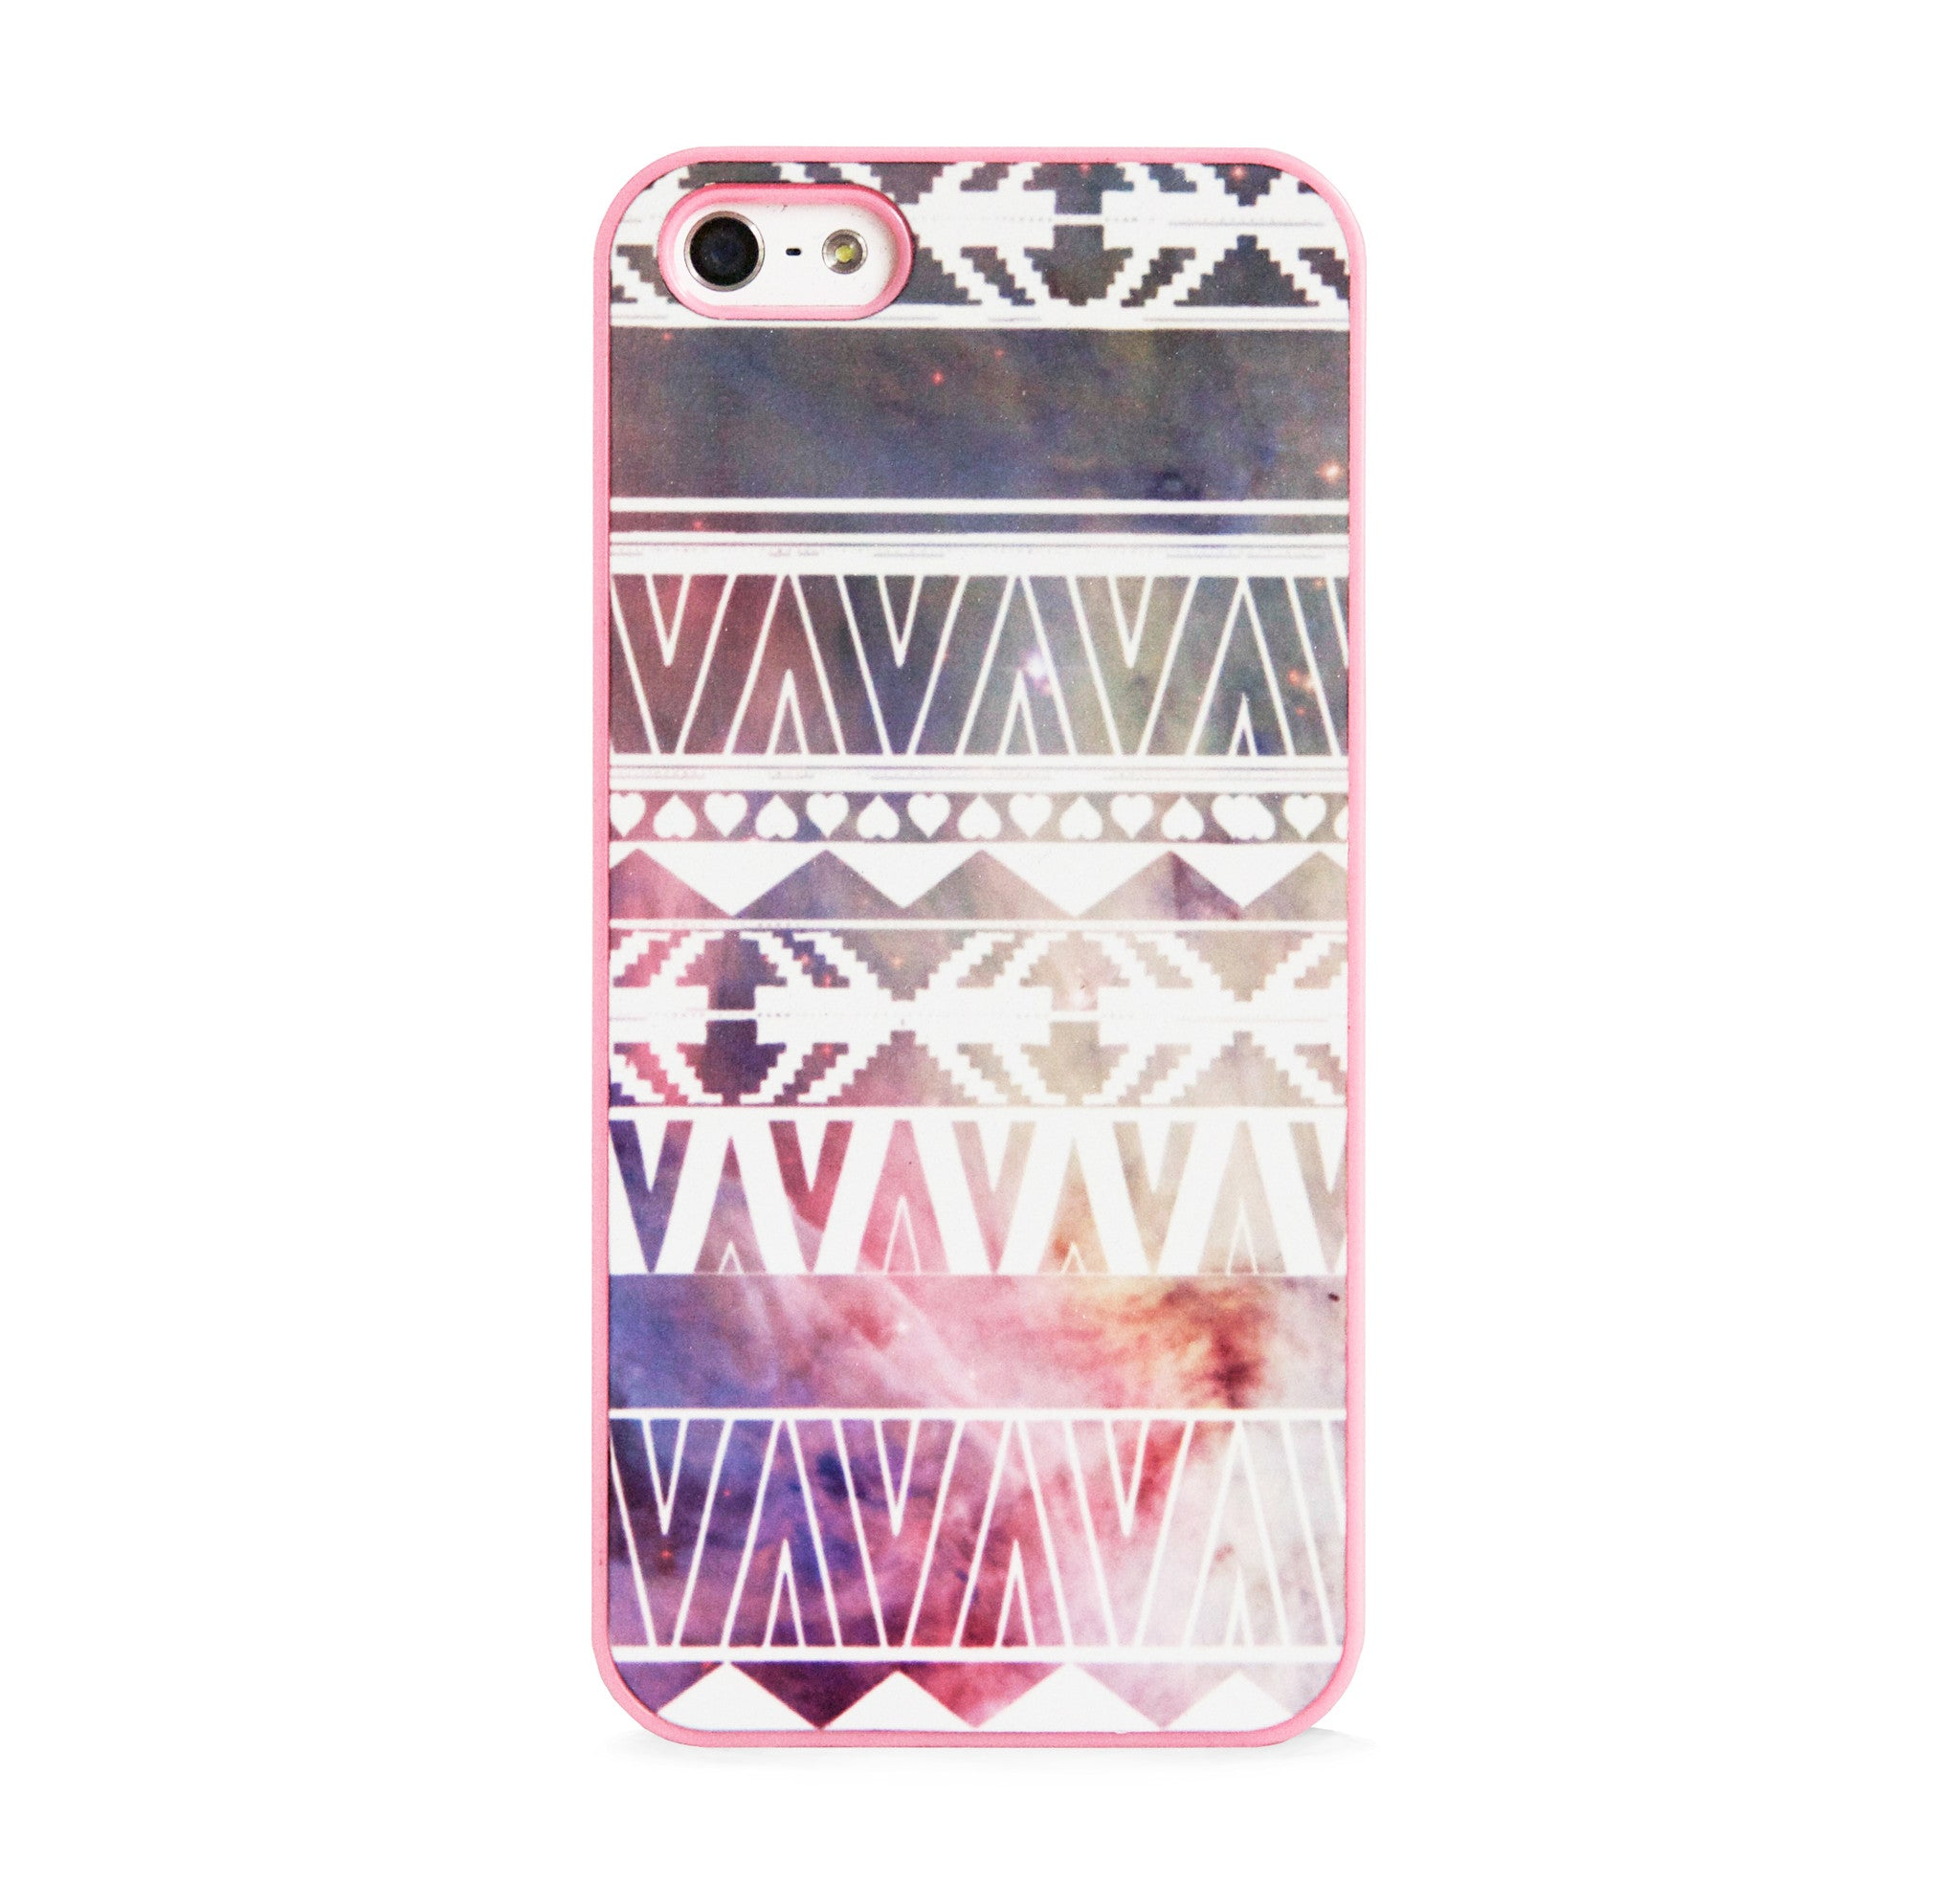 AZTEC ON PINK GALAXY IPHONE 5/5S CASE